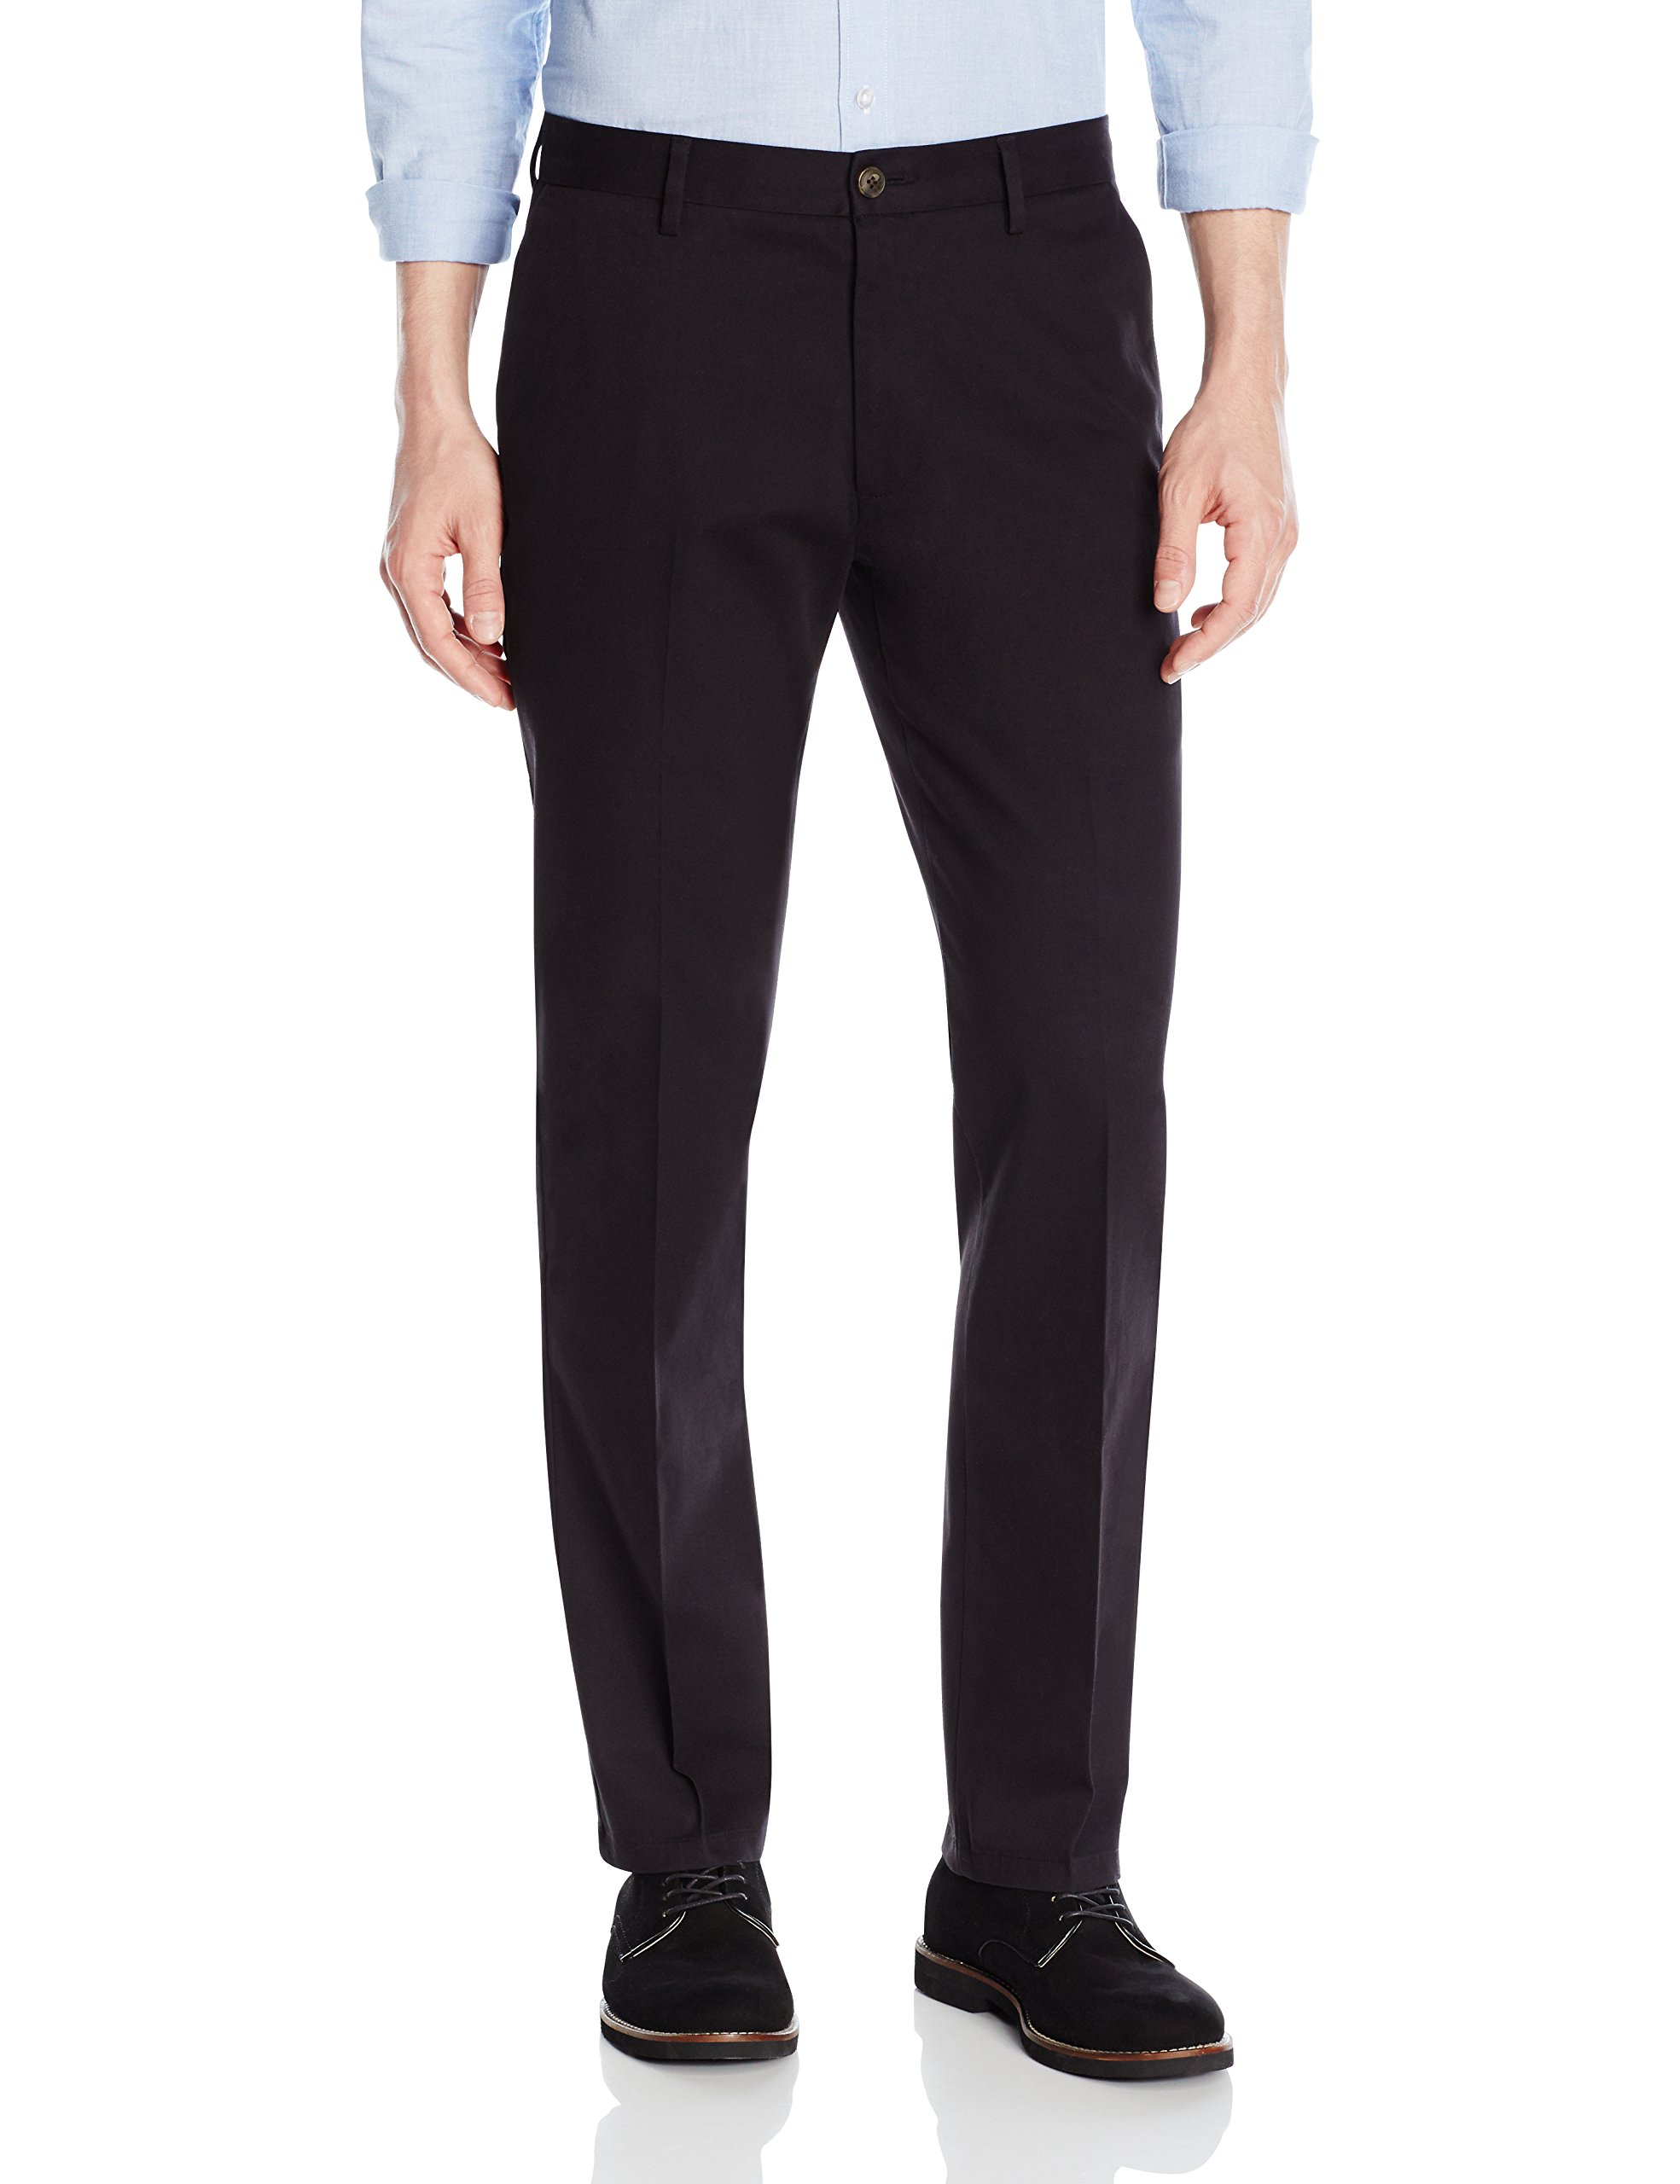 Goodthreads Men's Straight-Fit Wrinkle-Free Dress Chino Pant, Black, 36W x 30L